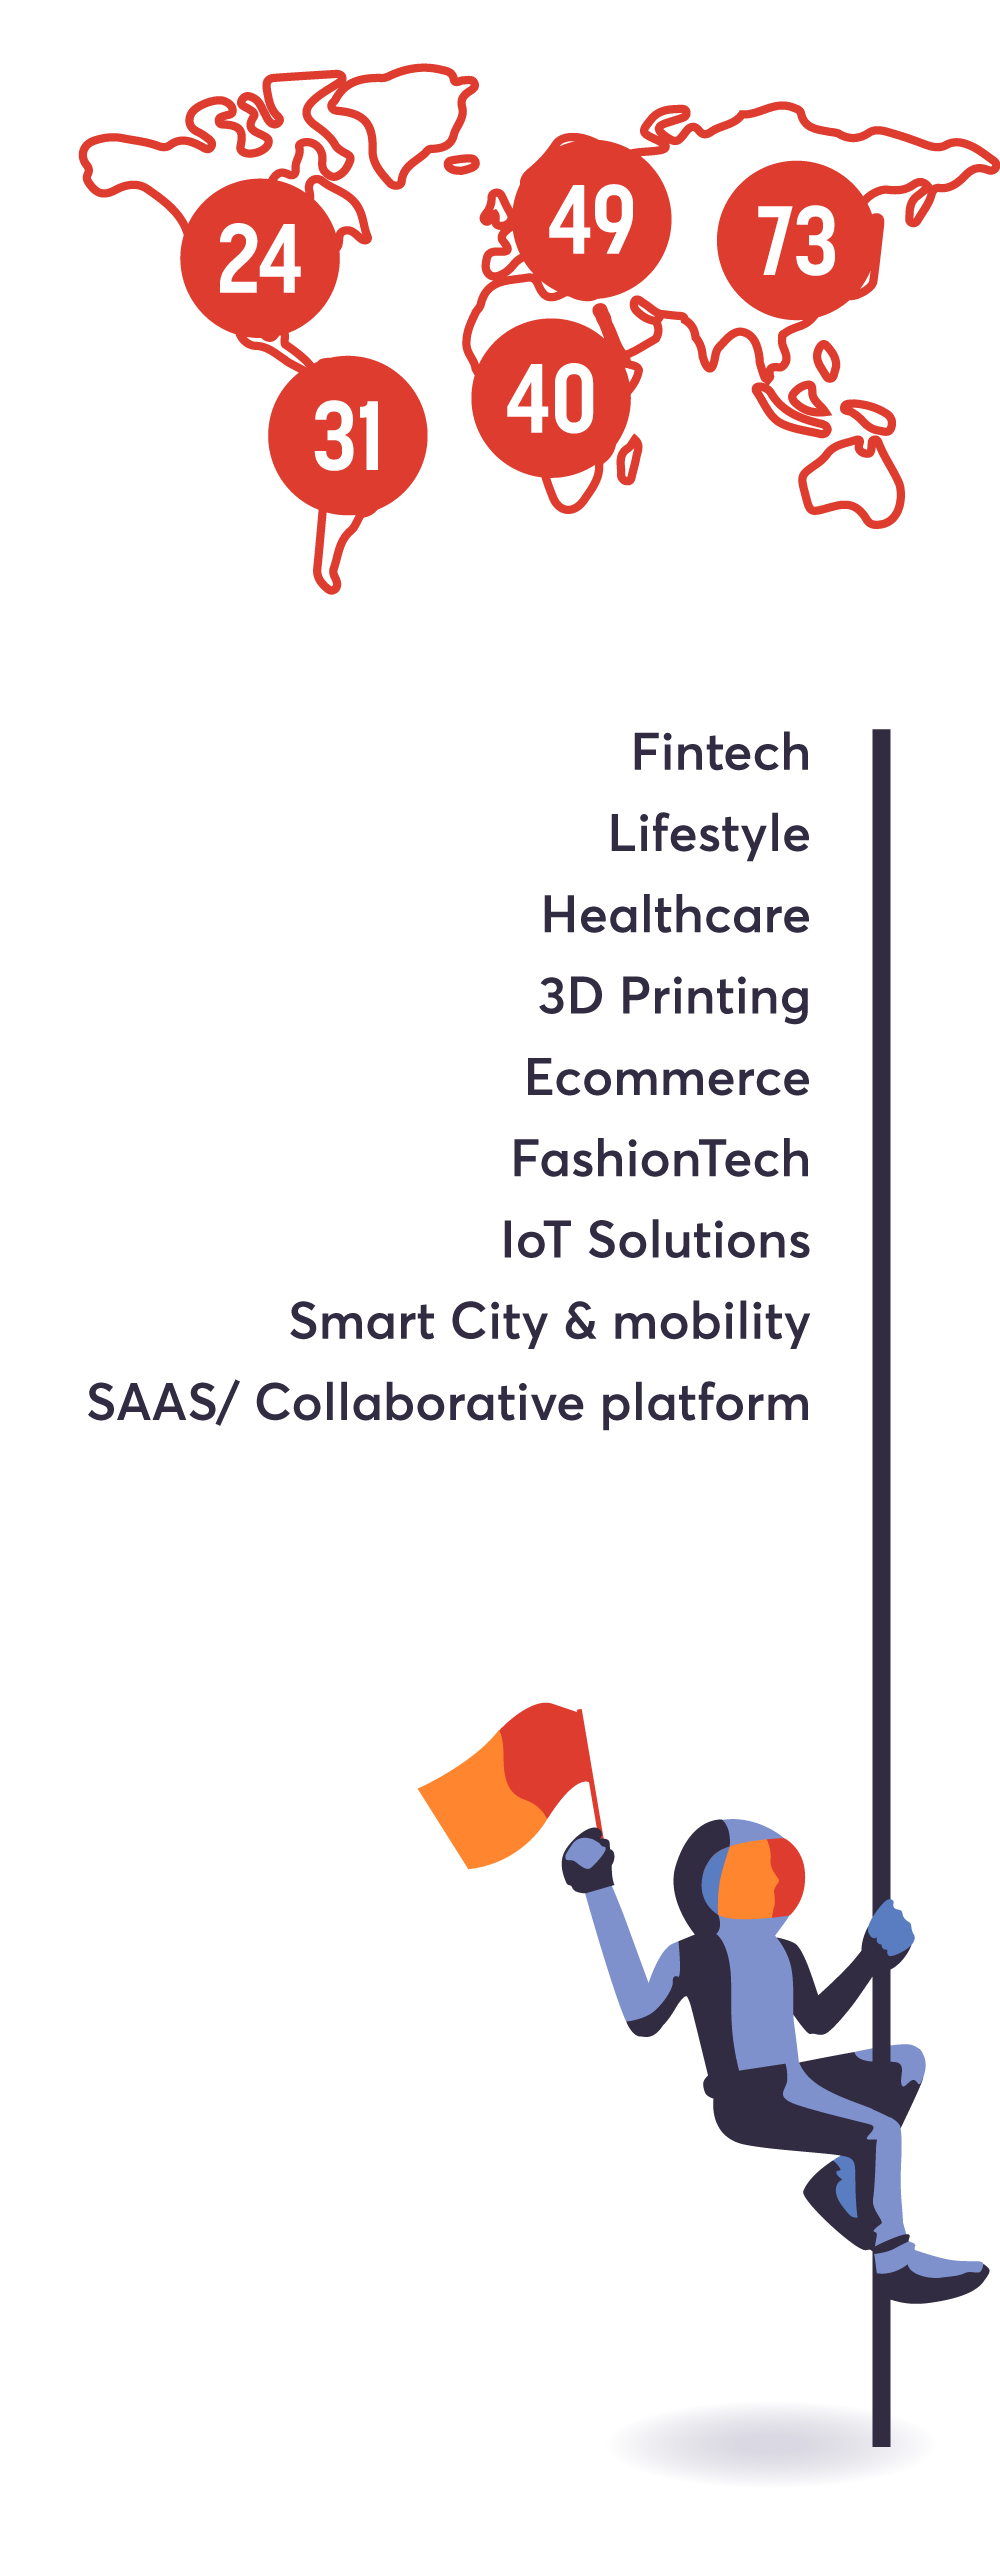 applications from foreign startups 2016